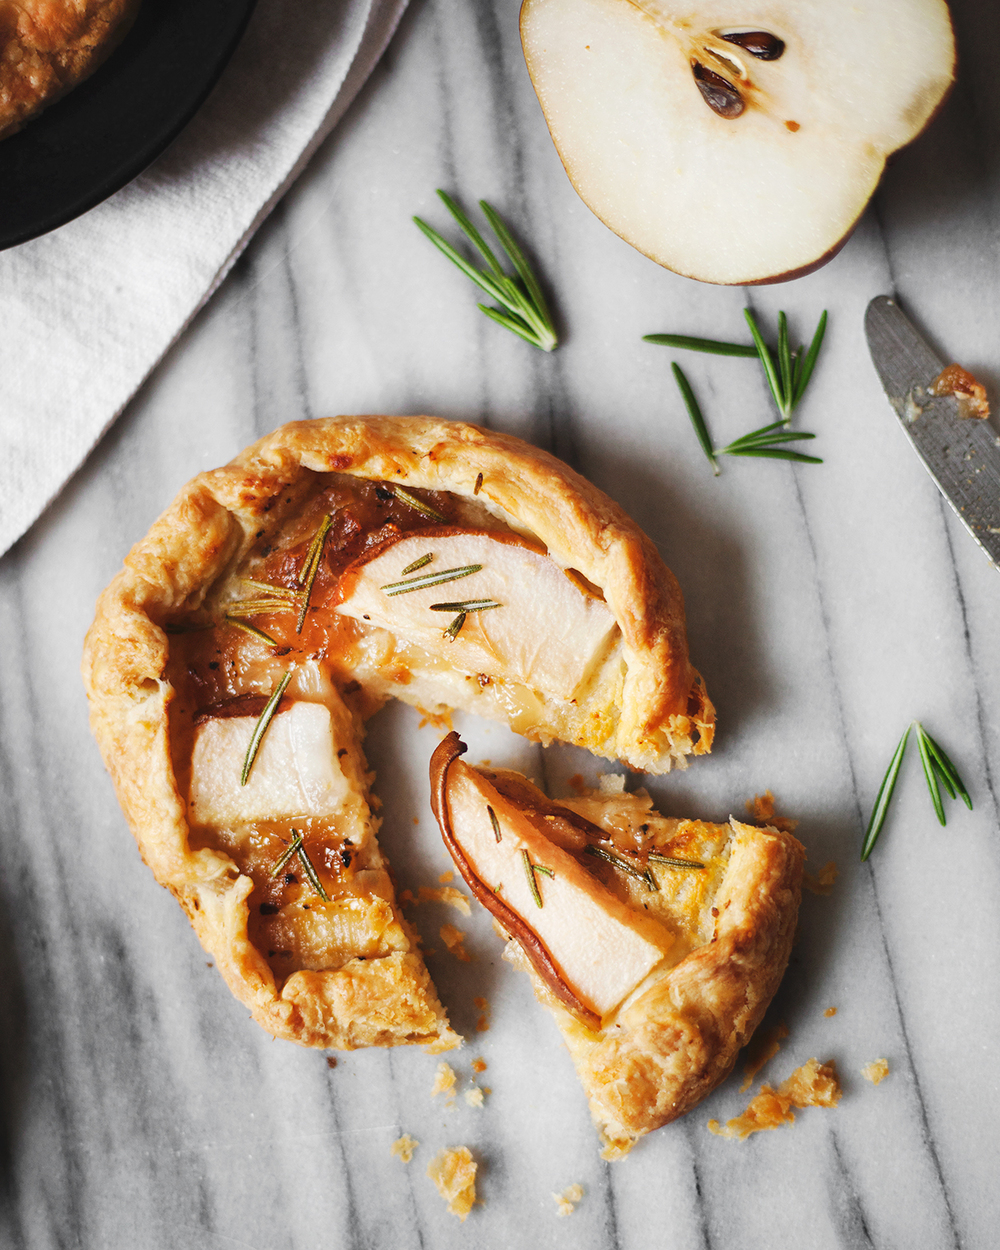 ABHSS_Rosemary-Pear-Galettes-with-Caramelized-Onions-and-Marscapone_0175.jpg